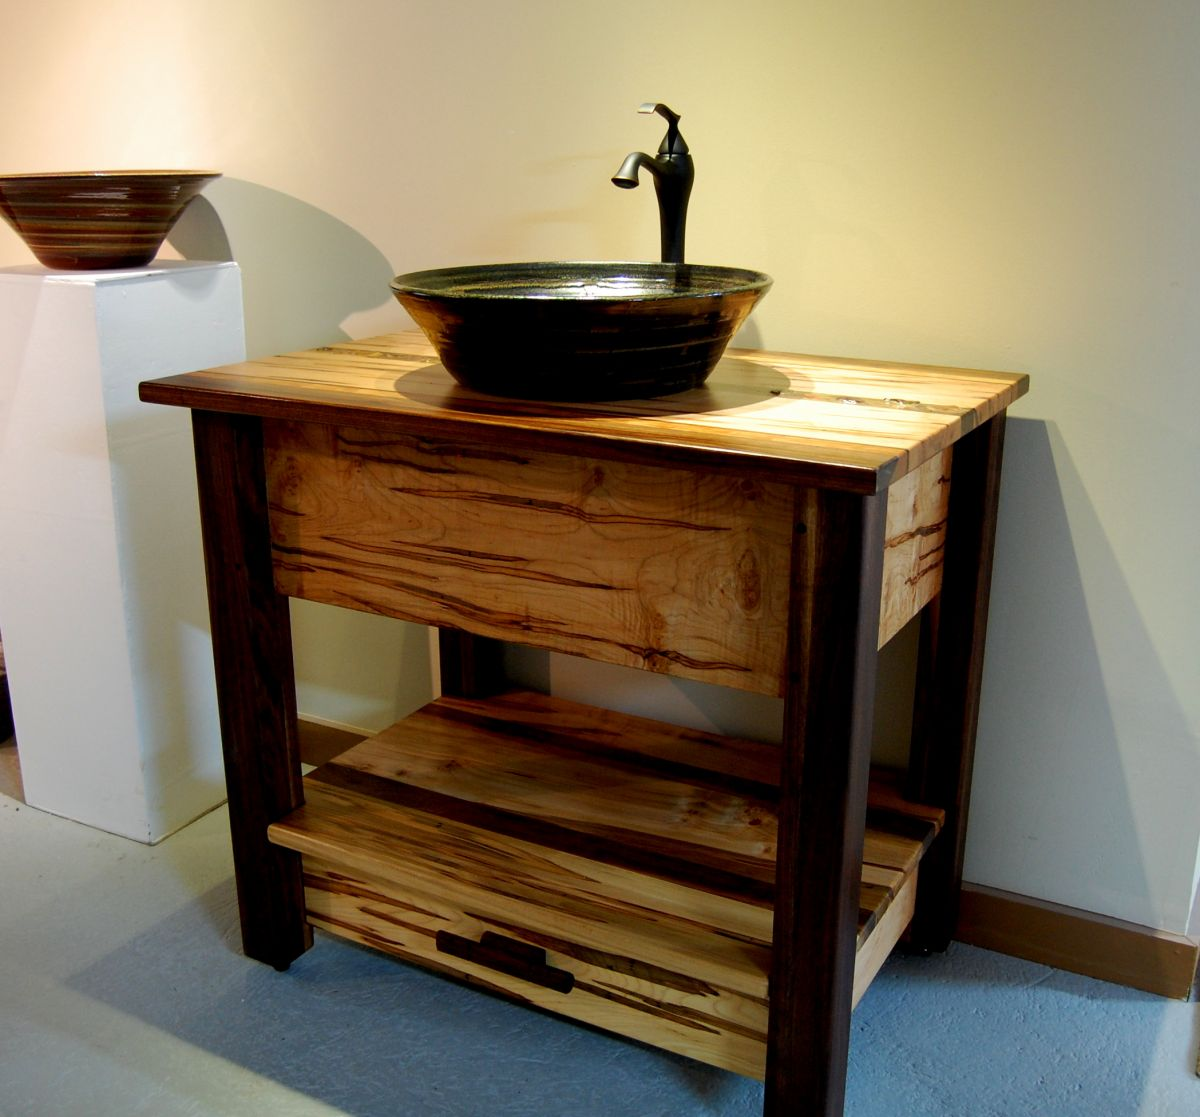 traditional small bathroom vanities with vessel sinks made of solid wooden  with rack underneath plus cool. Small Bathroom Vanities With Vessel Sinks to Create Cool and